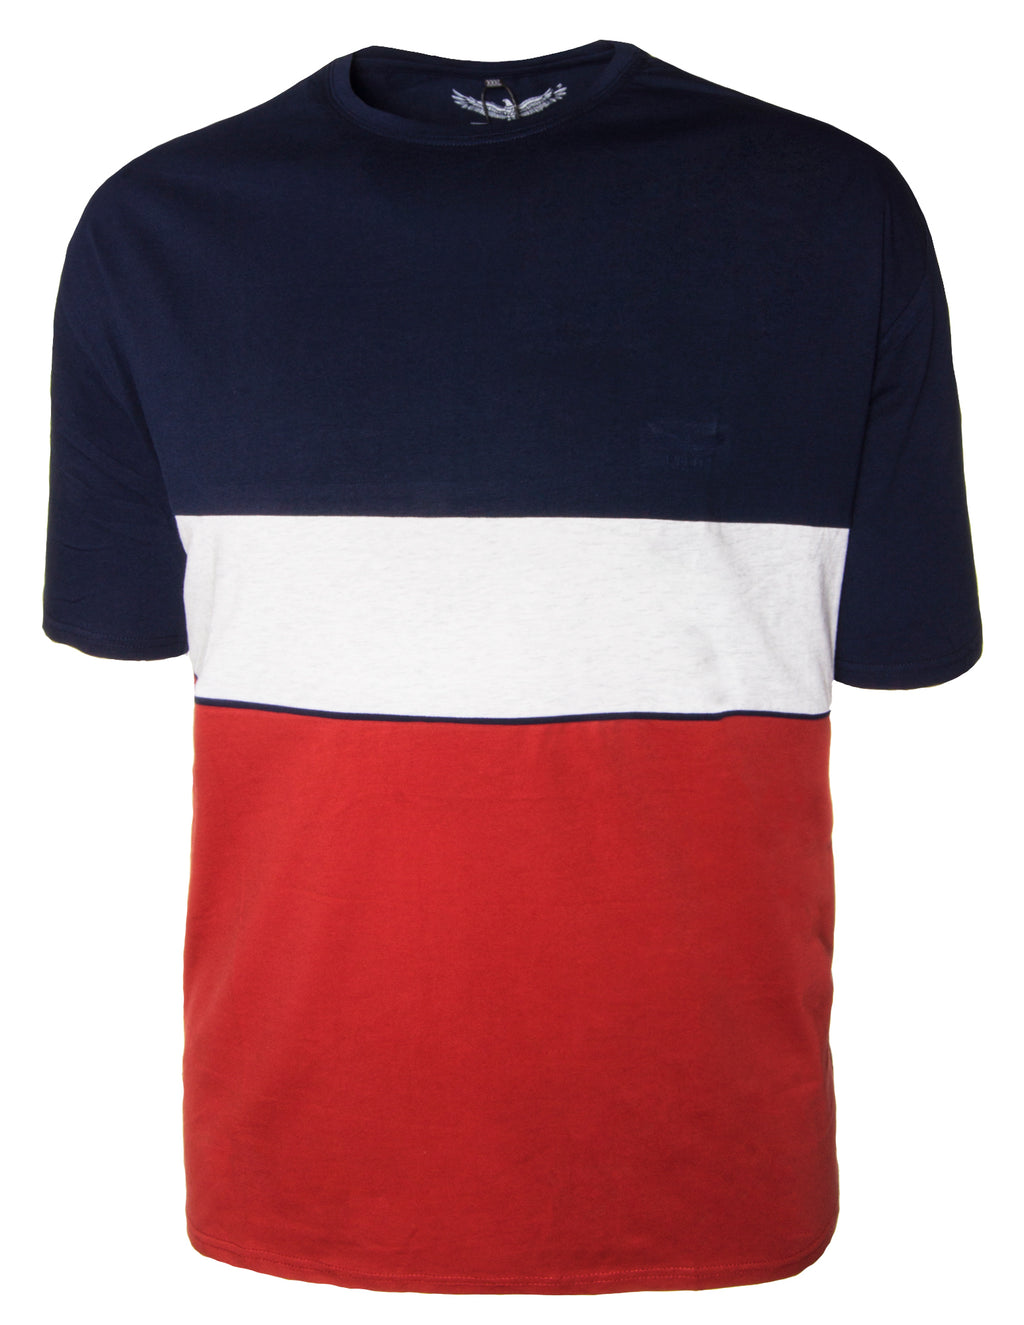 Plot Navy B81T40-N Cotton S/S Tee